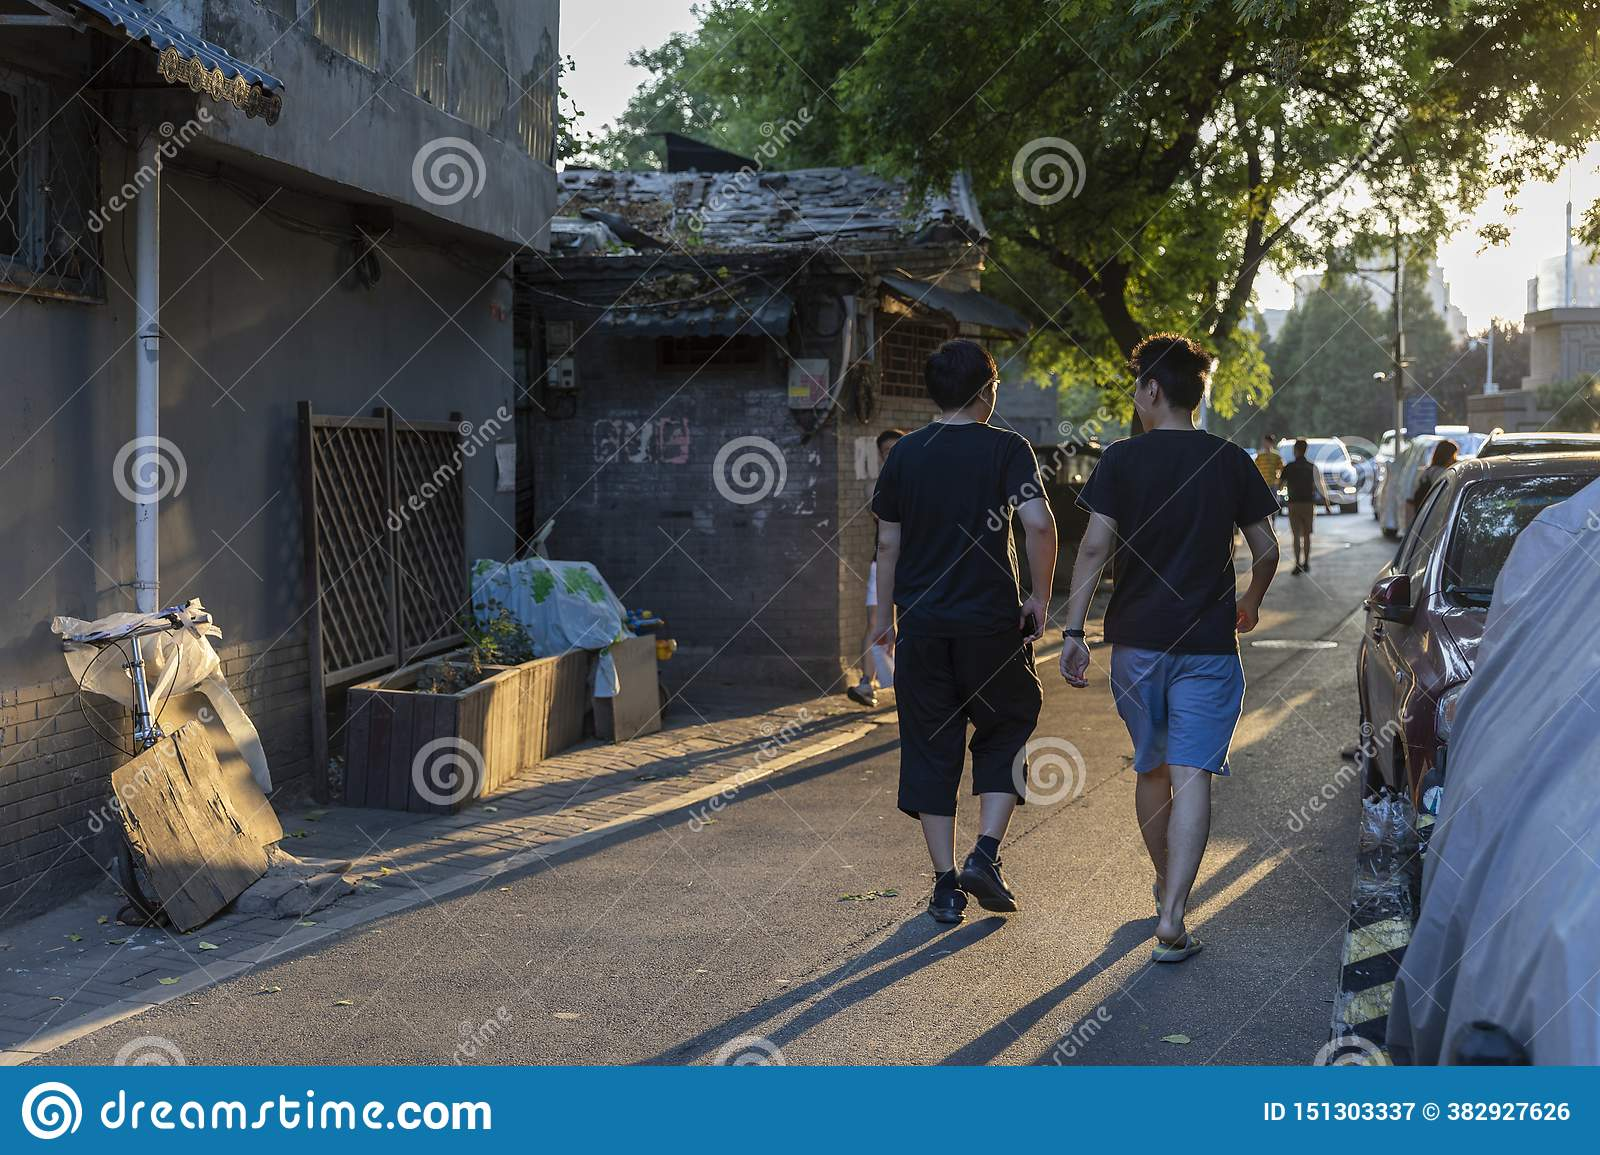 The Wudaoying Hutong in Beijing, China, is one of the commercial hutongs in Beijing.